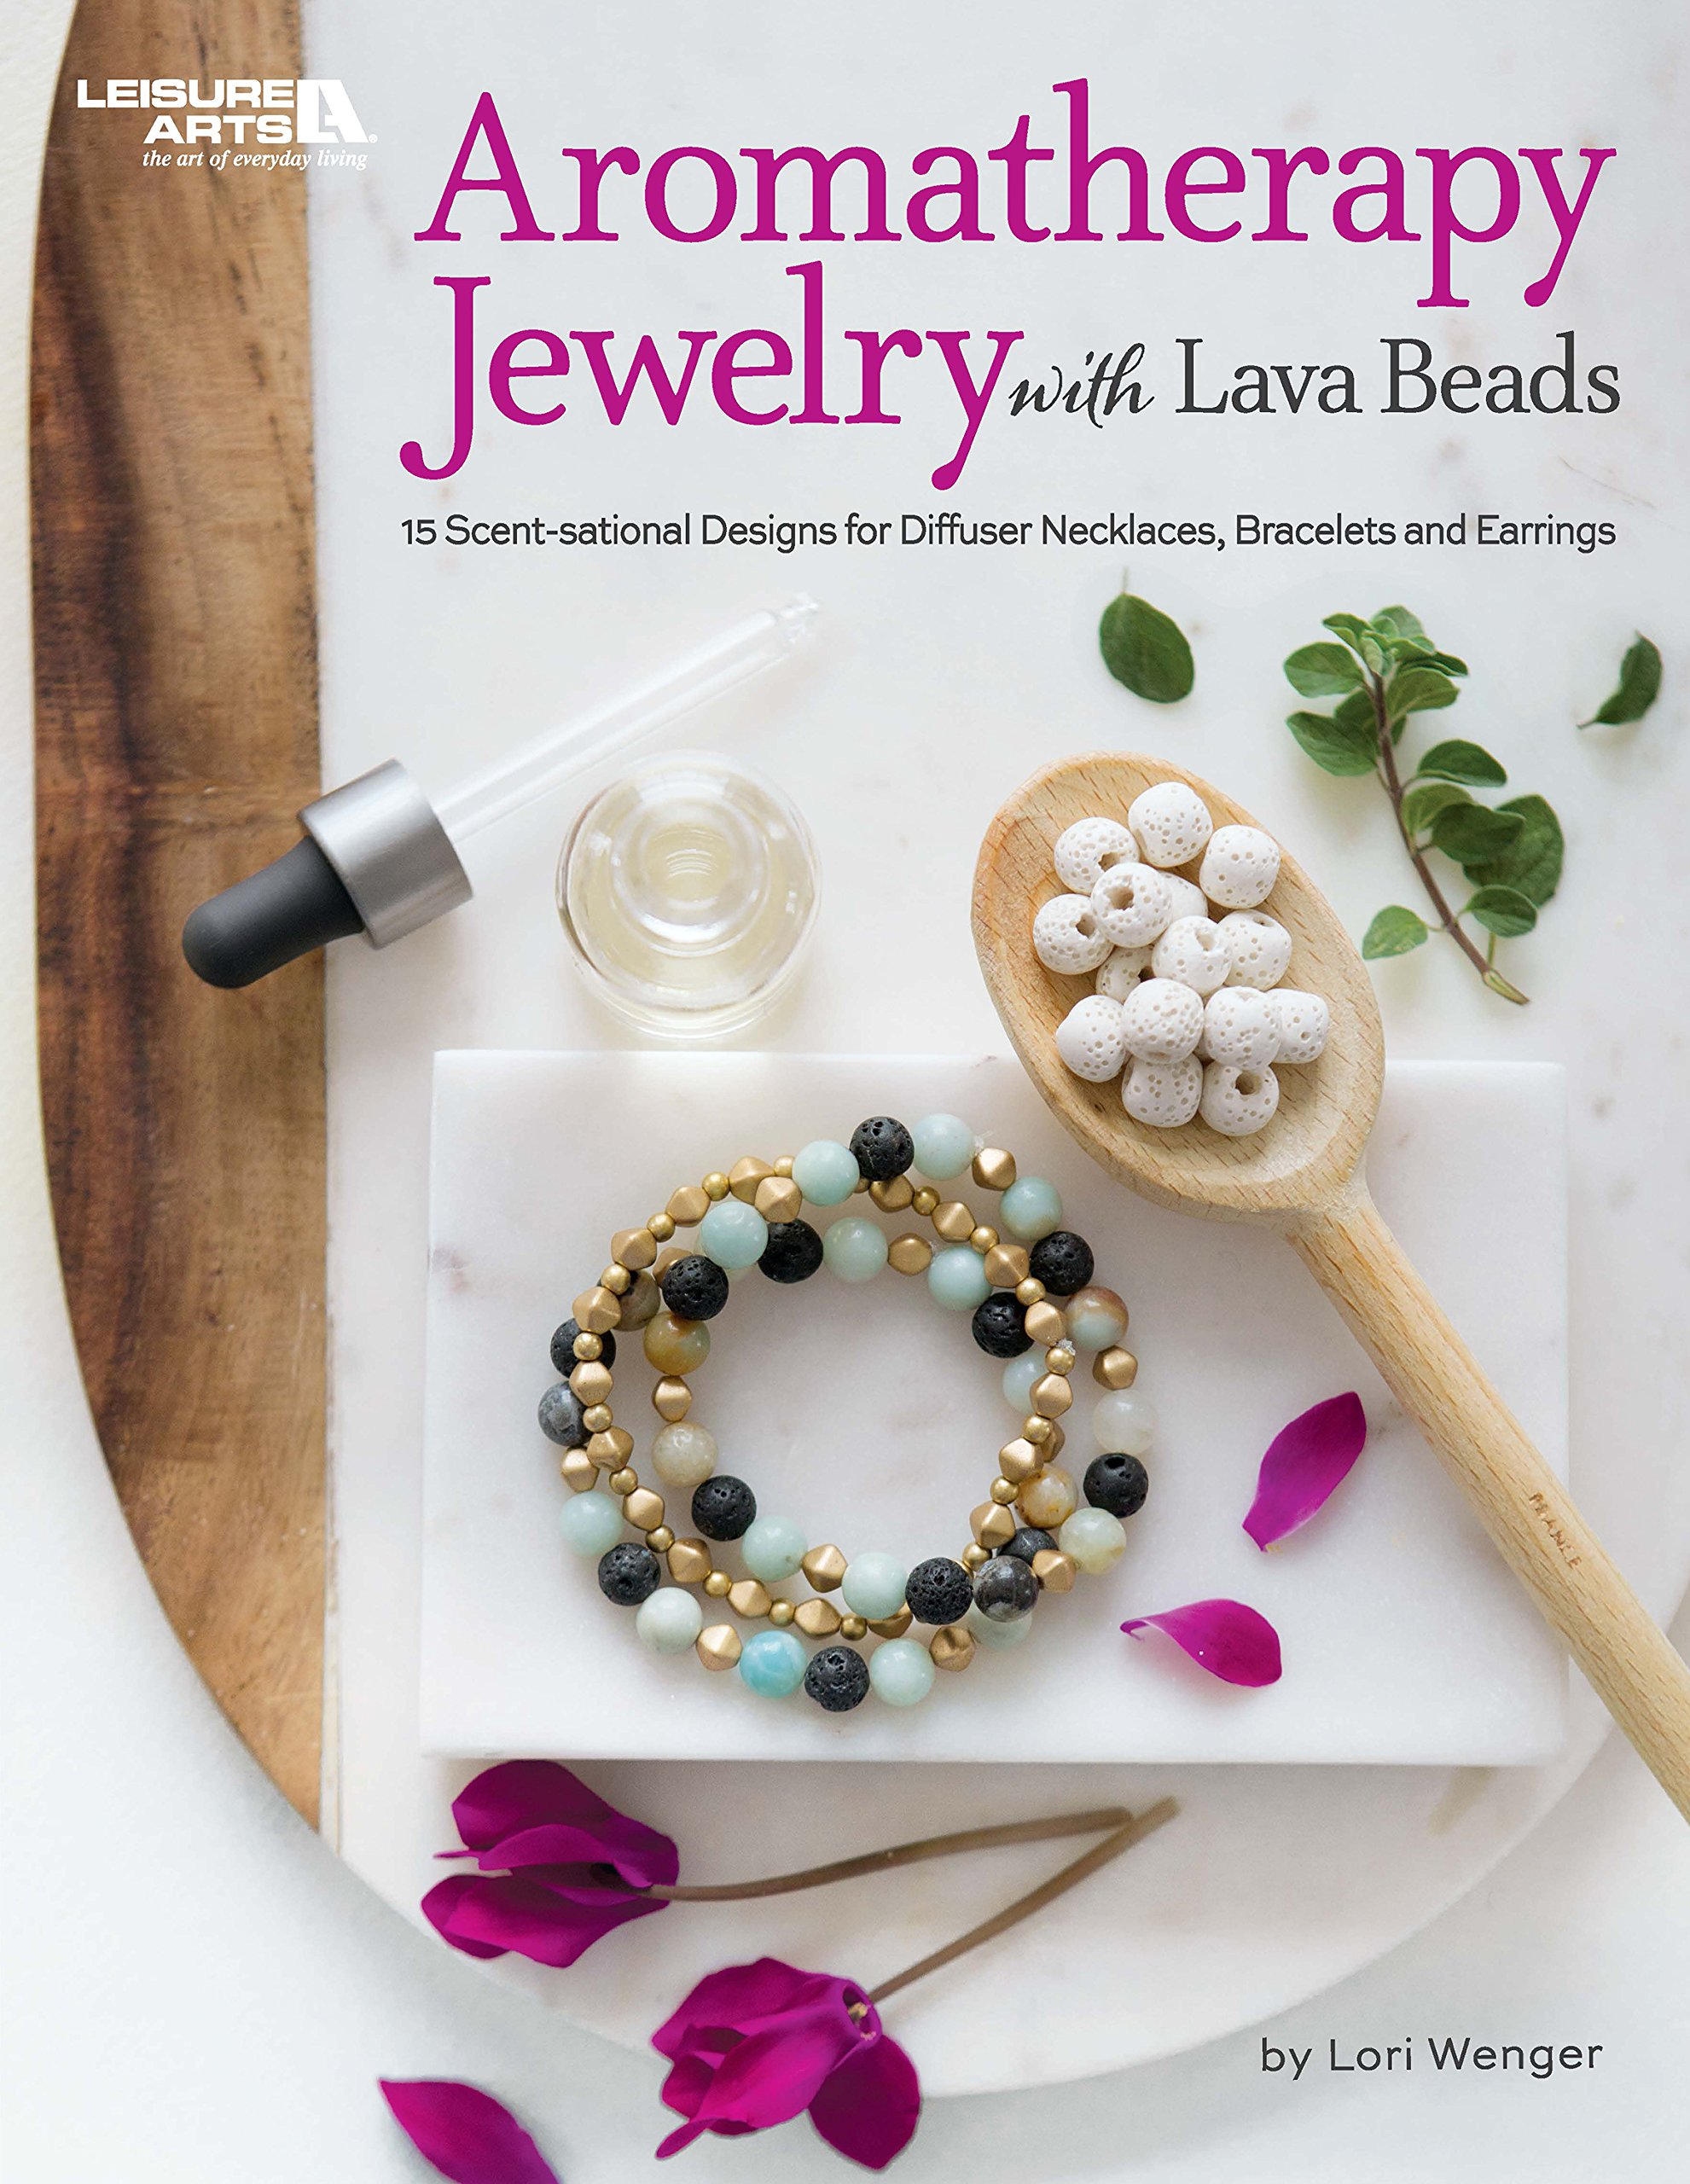 Aromatherapy Jewelry with Lava Beads: 15 Scent-sational Designs for Diffuser Necklaces, Bracelets and Earings